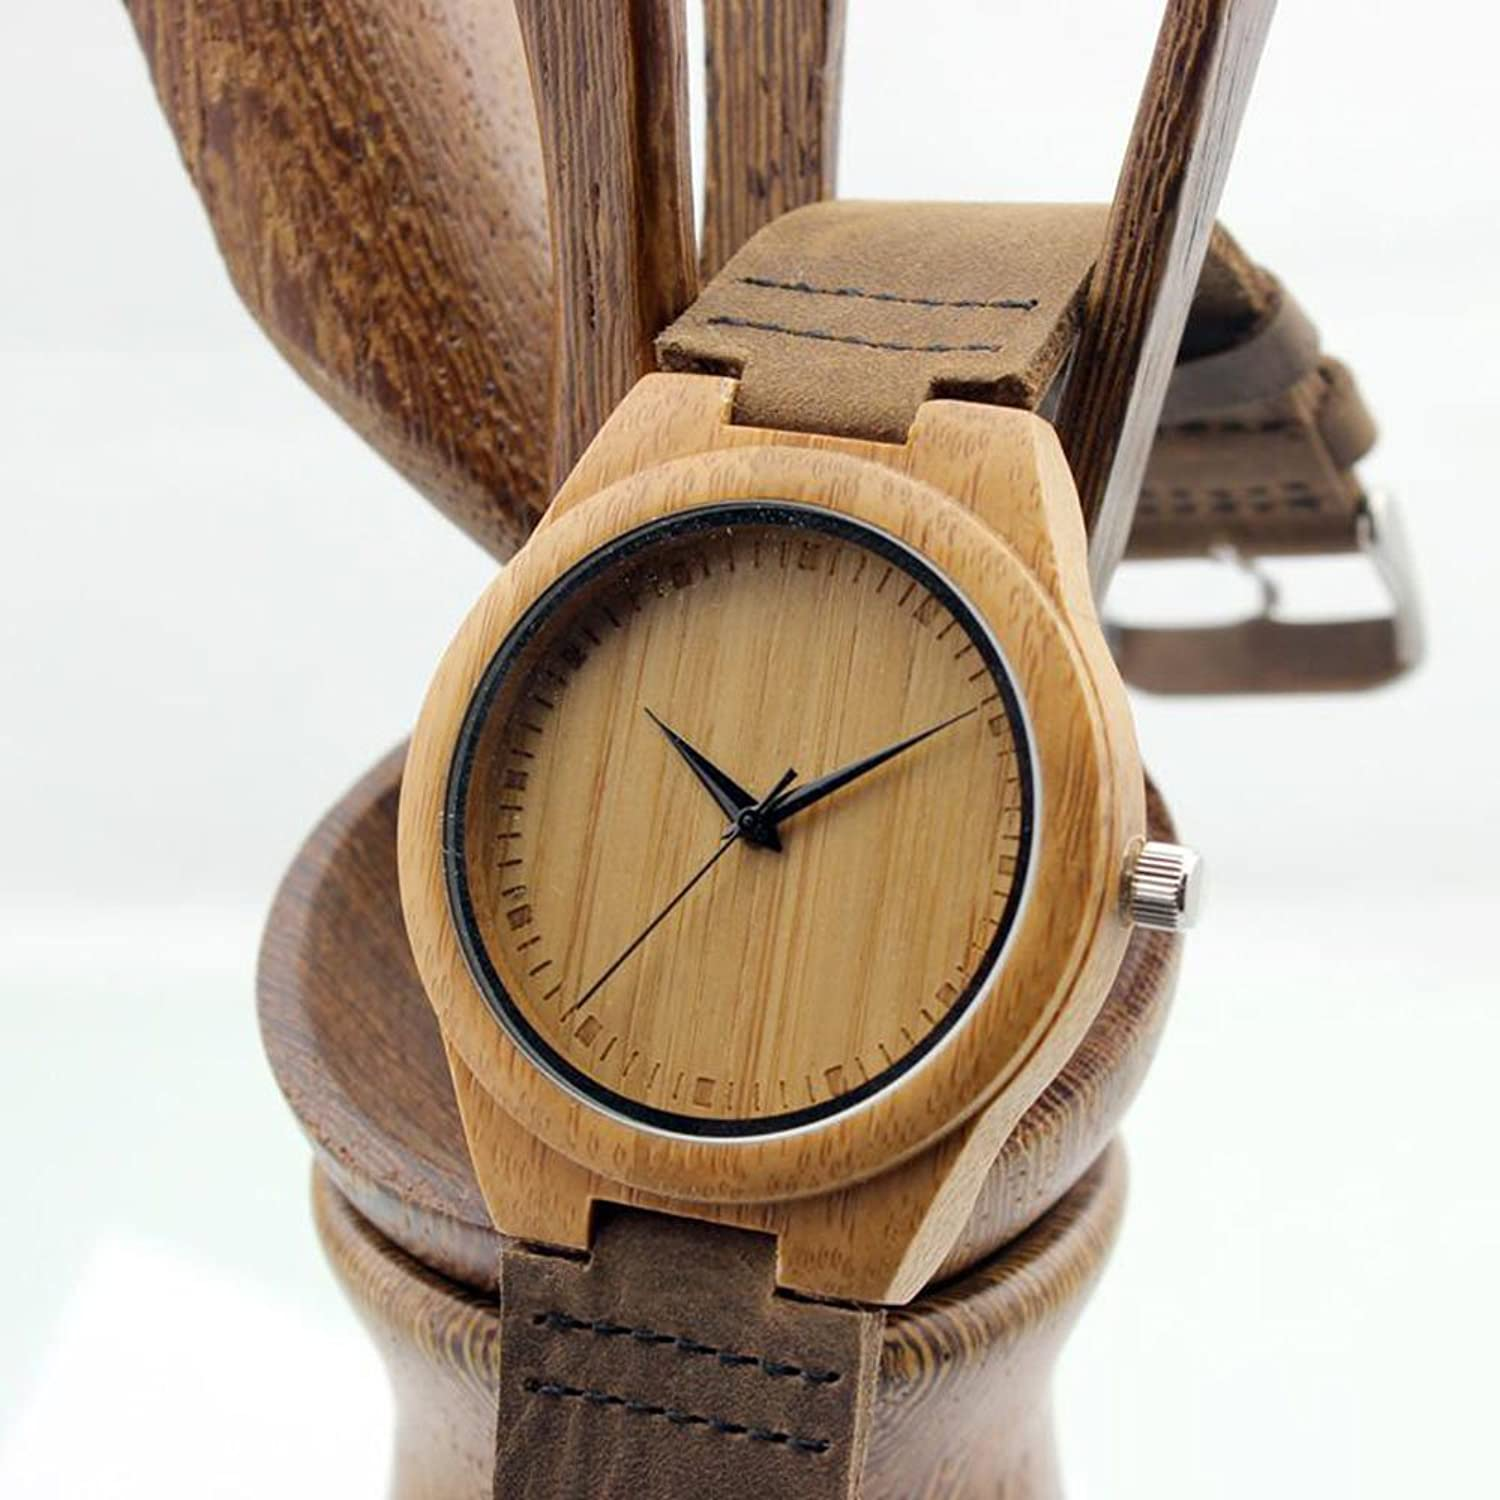 unique quadrangle fashion clock men design vintage wristwatches in handmade s from wood bamboo hours watch watches leather analog item quartz man